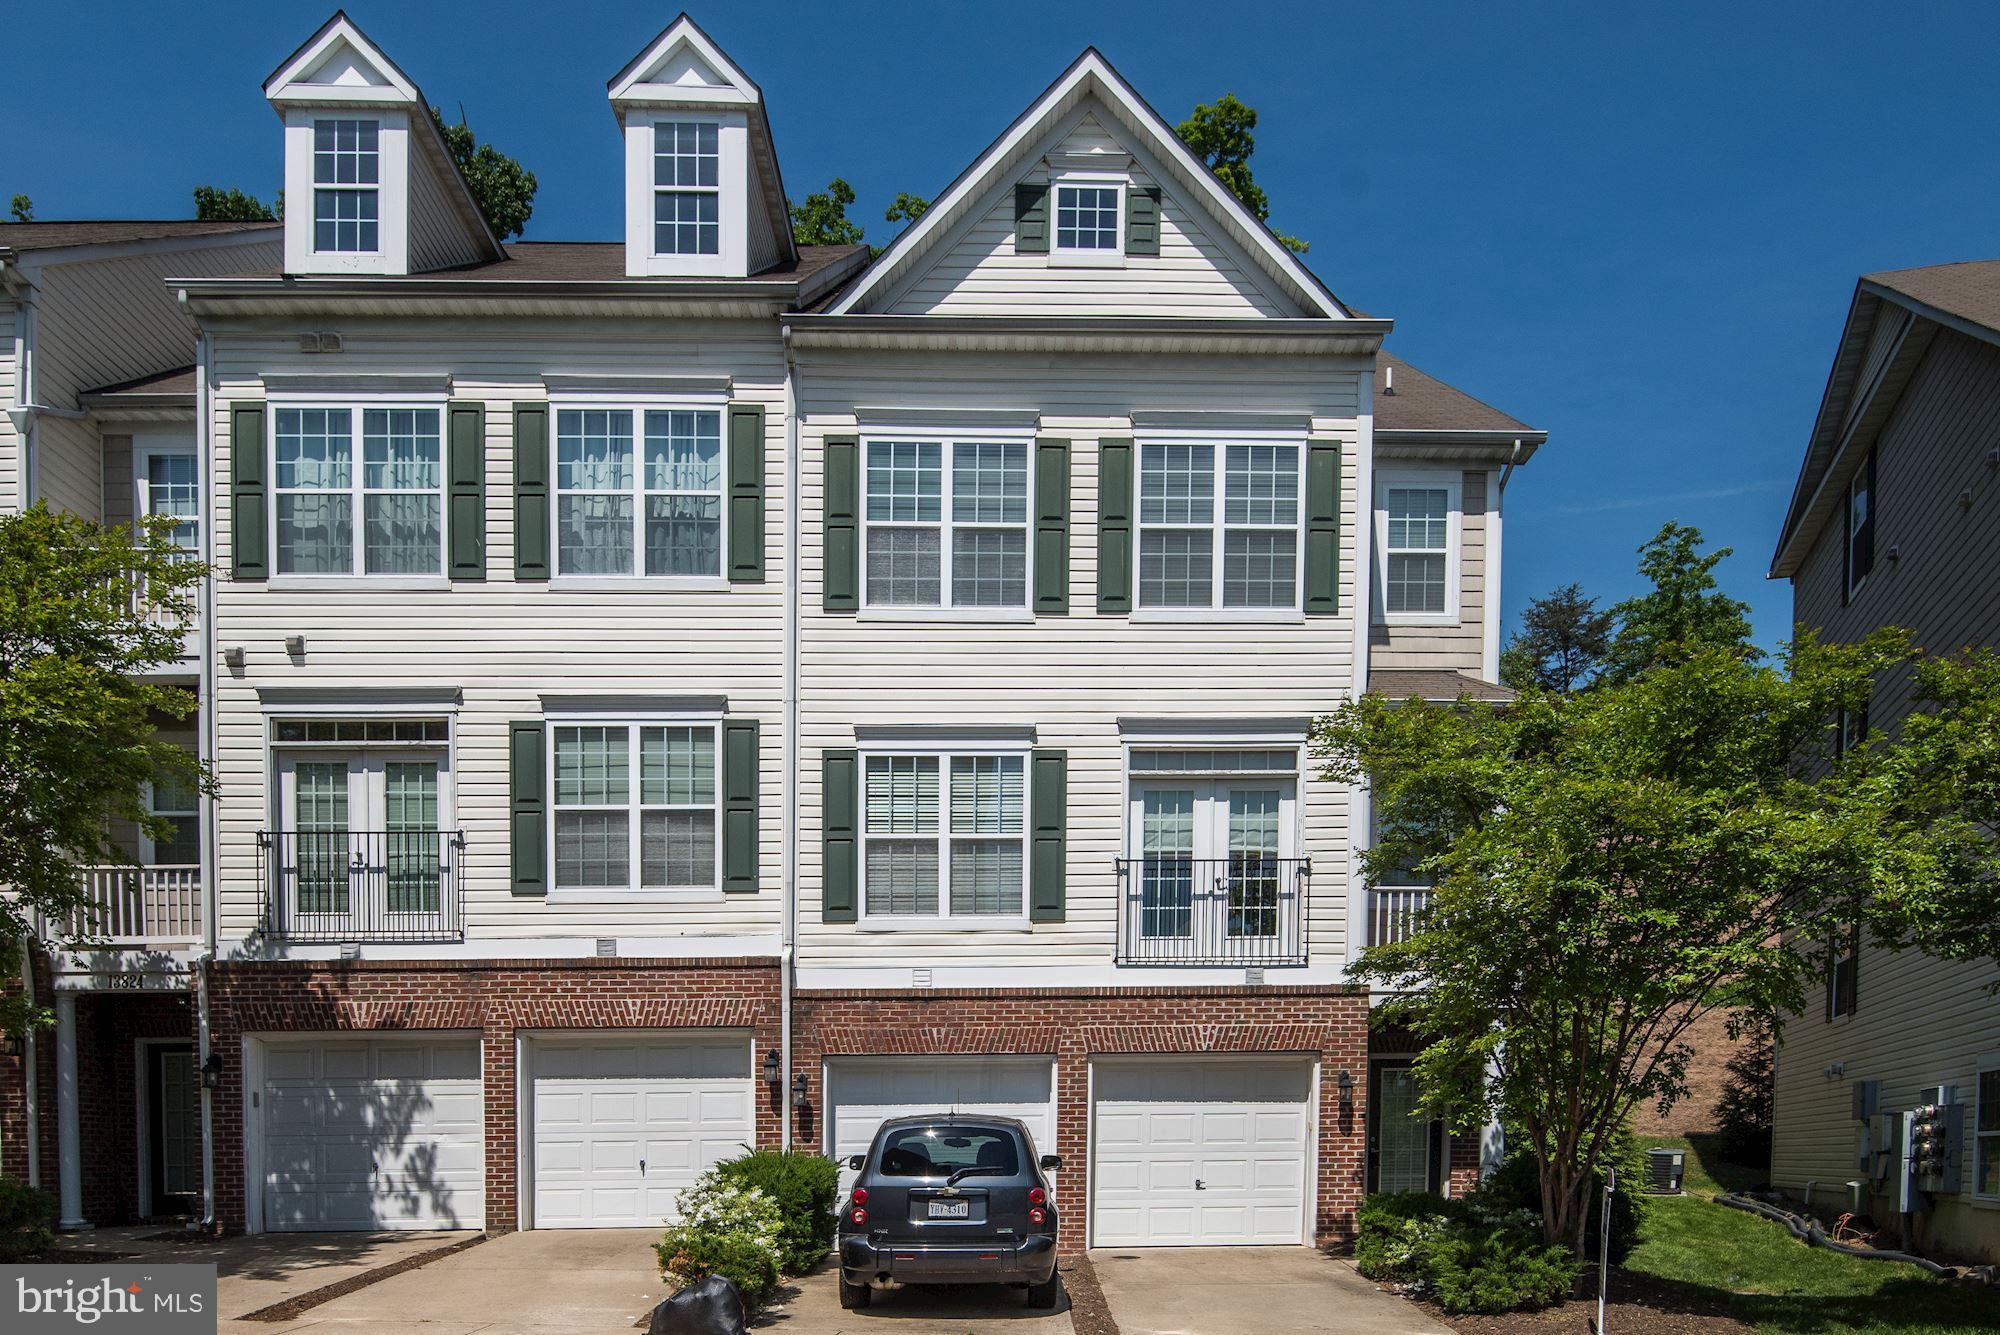 FANTASTIC LOCATION BY I-95, POTOMAC MILLS, WEGMANS, HOSPITAL NEARBY. MOVE IN READY CONDO WITH ONE CAR GARAGE WITH EASY ACCESS TO THE INTERIOR OF THE UNIT. MOVE IN READY, 3 BEDROOM, 2.5 BATHS, WALK-IN CLOSETS, NEW DECK WITH GREAT PRIVACY. NEW FLOORS, DESIGNED PLANTATION SHUTTERS, 3 SIDE FIREPLACE.  MUST SEE!